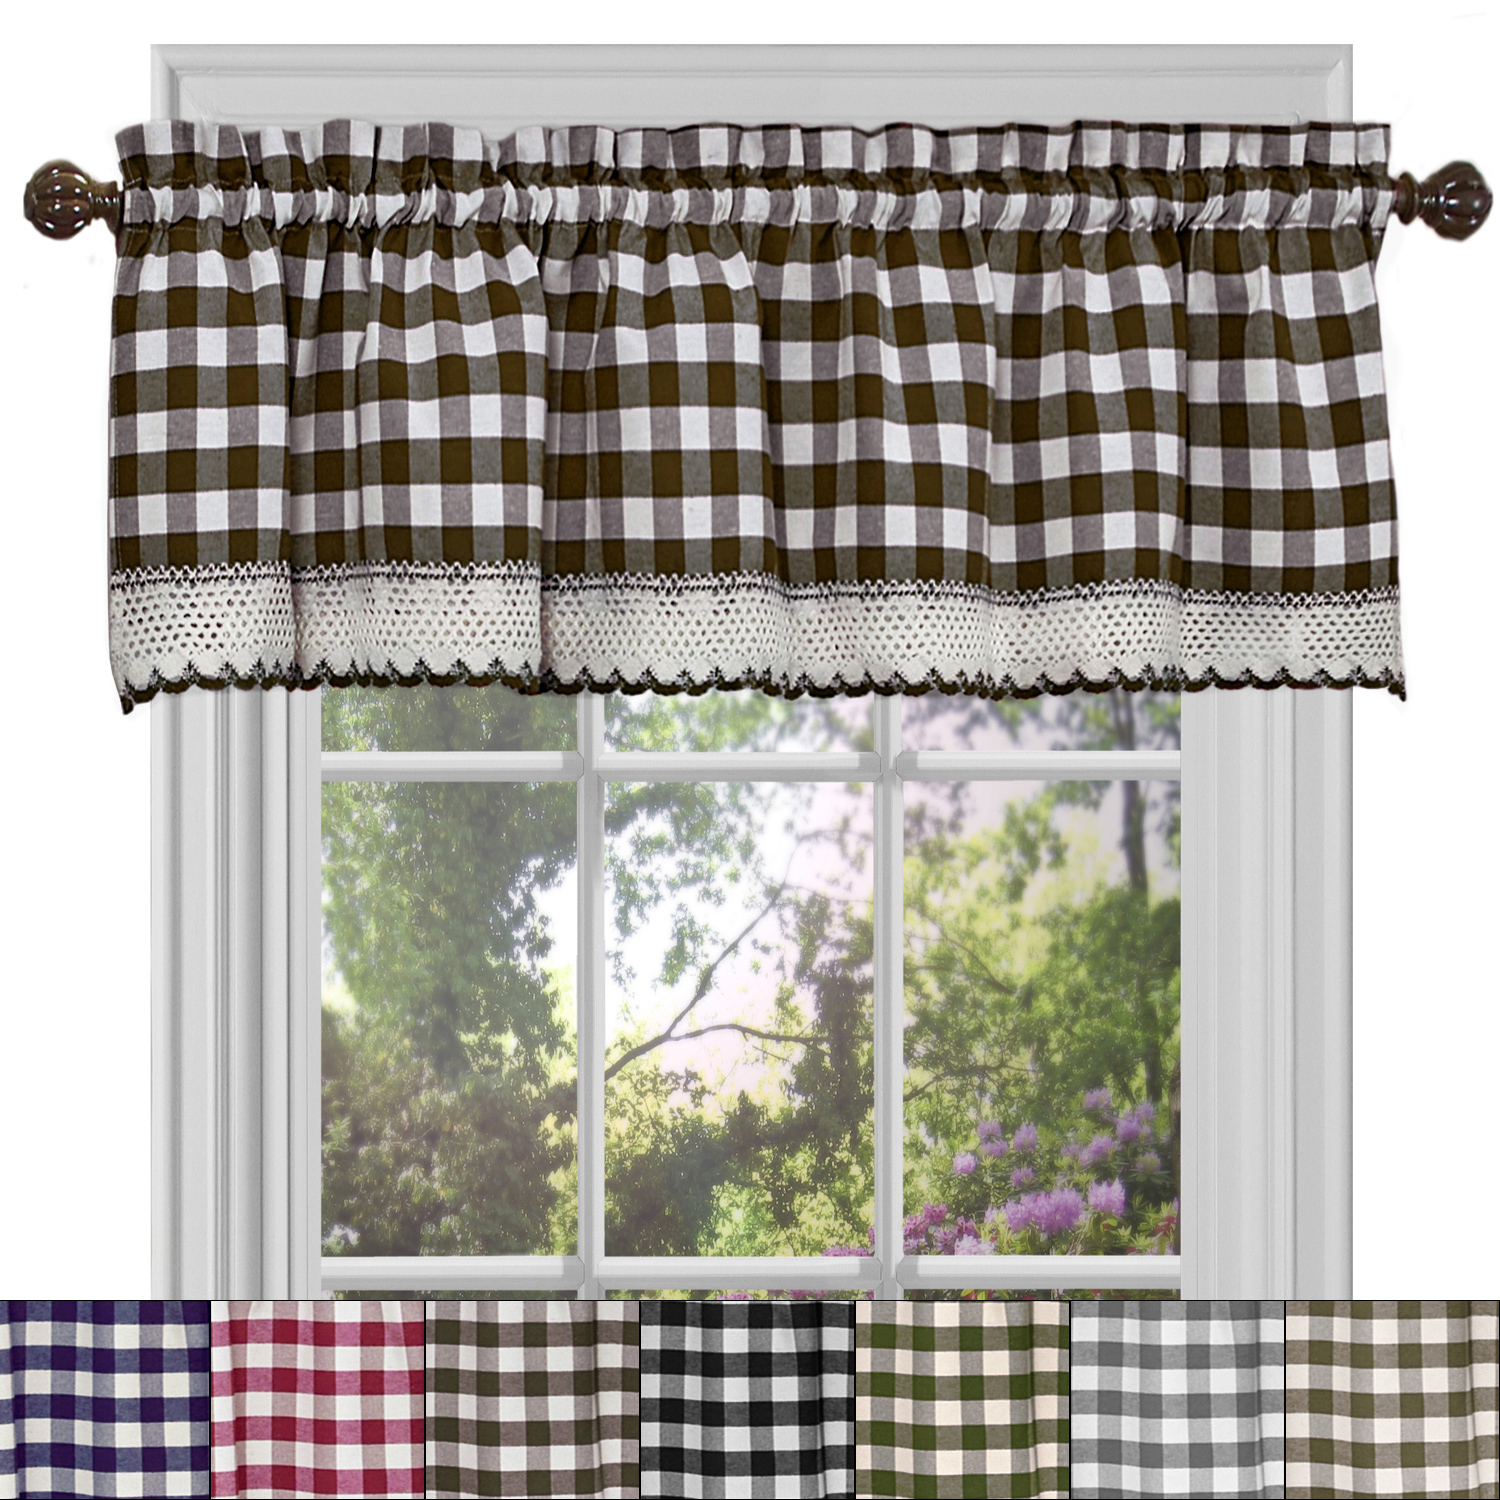 "Details About Buffalo Check Gingham Kitchen Curtain Valance - 14"" X 58"" for Barnyard Buffalo Check Rooster Window Valances (Image 15 of 20)"